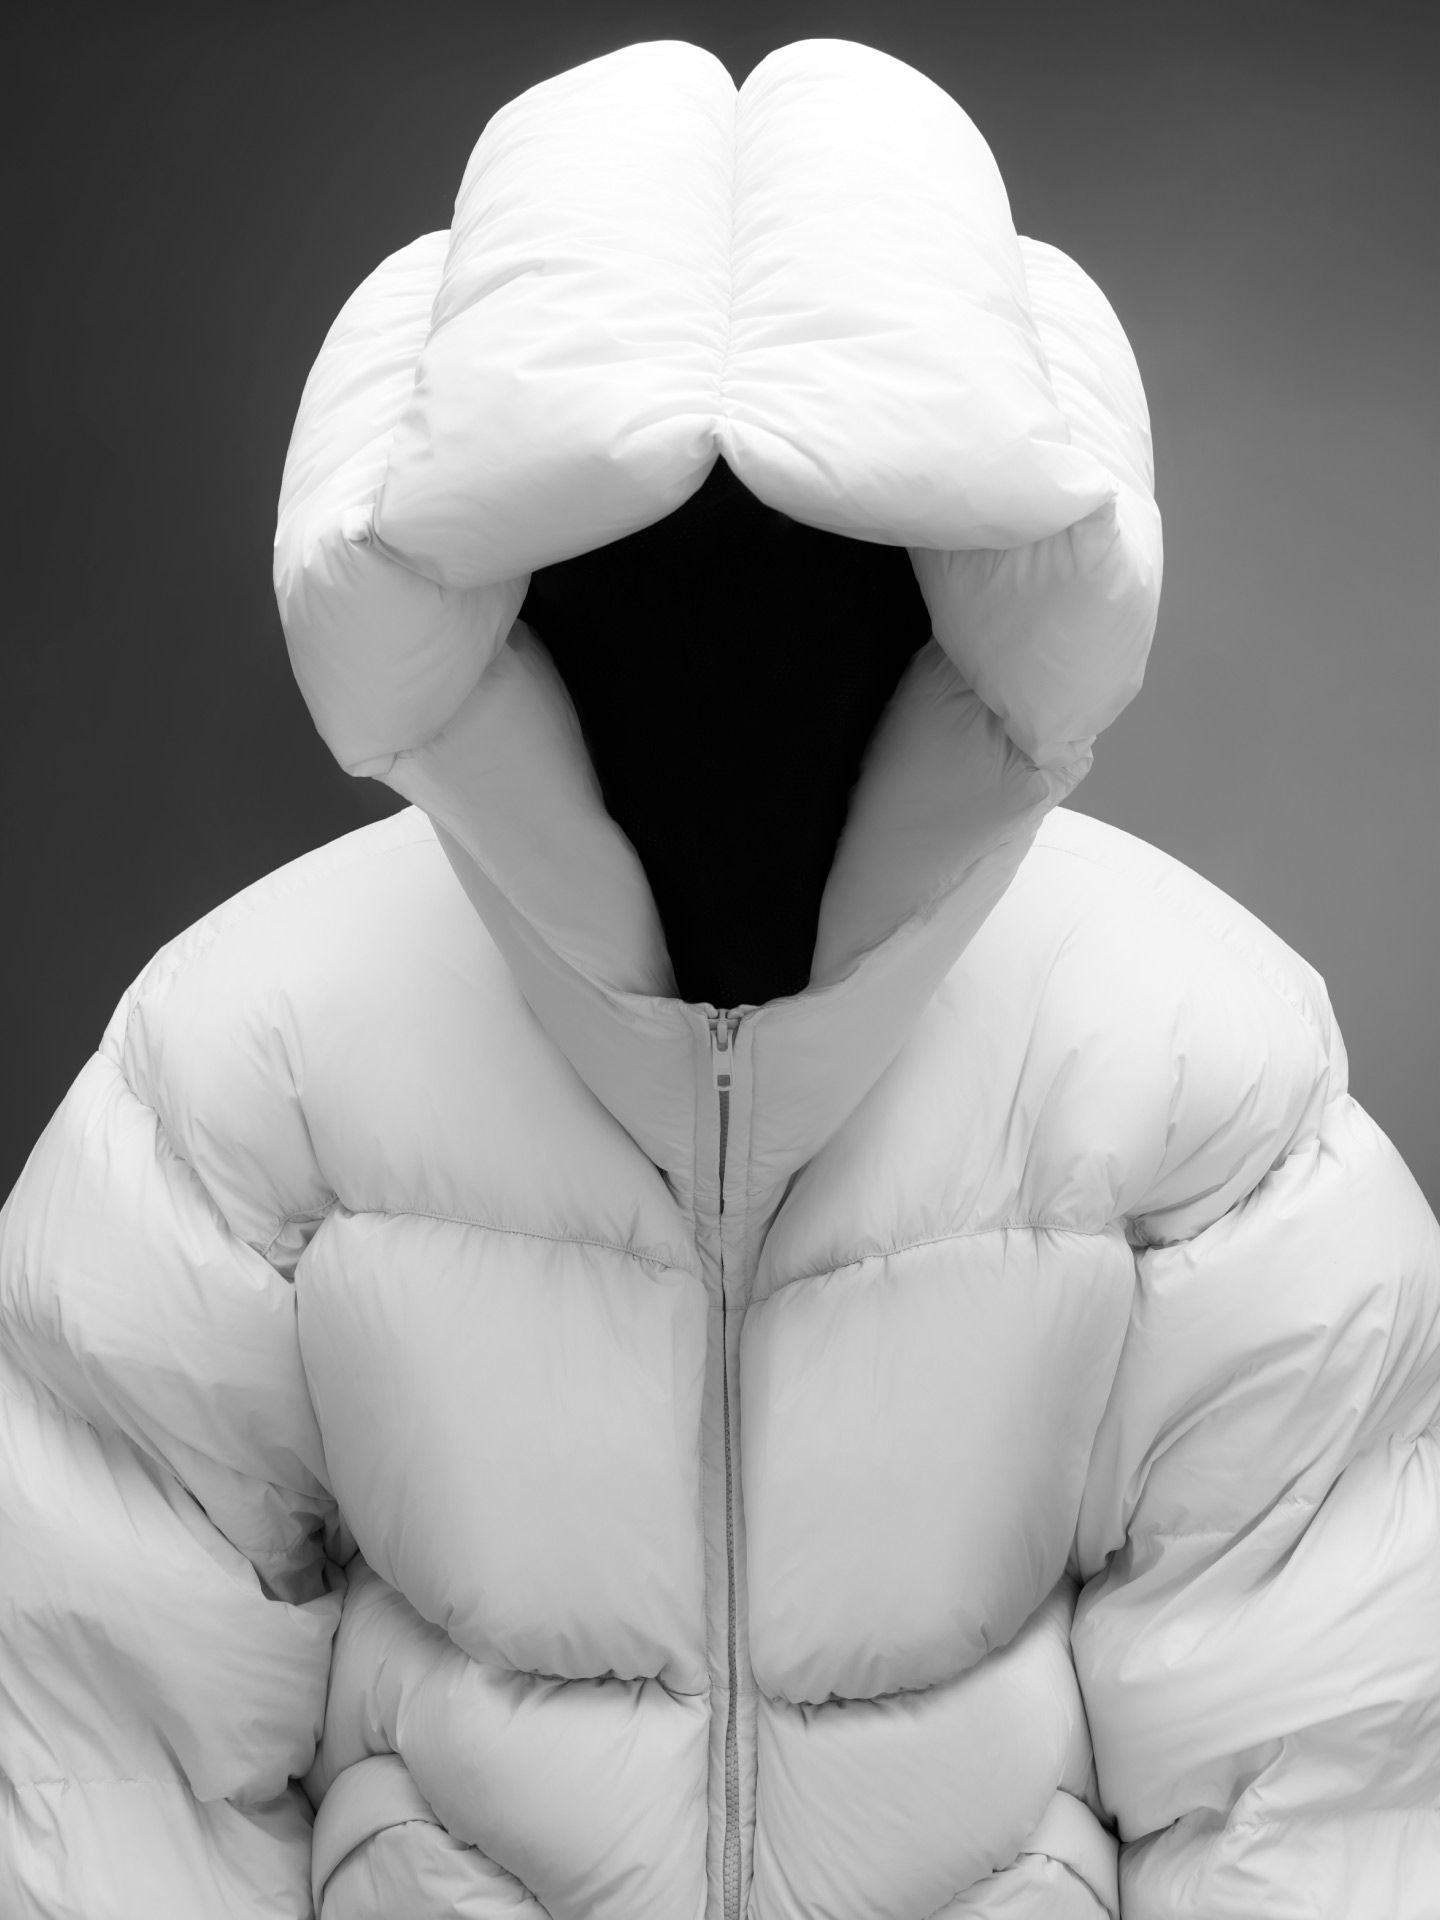 DINGYUN ZHANG - Black and white image of a Moncler down jacket